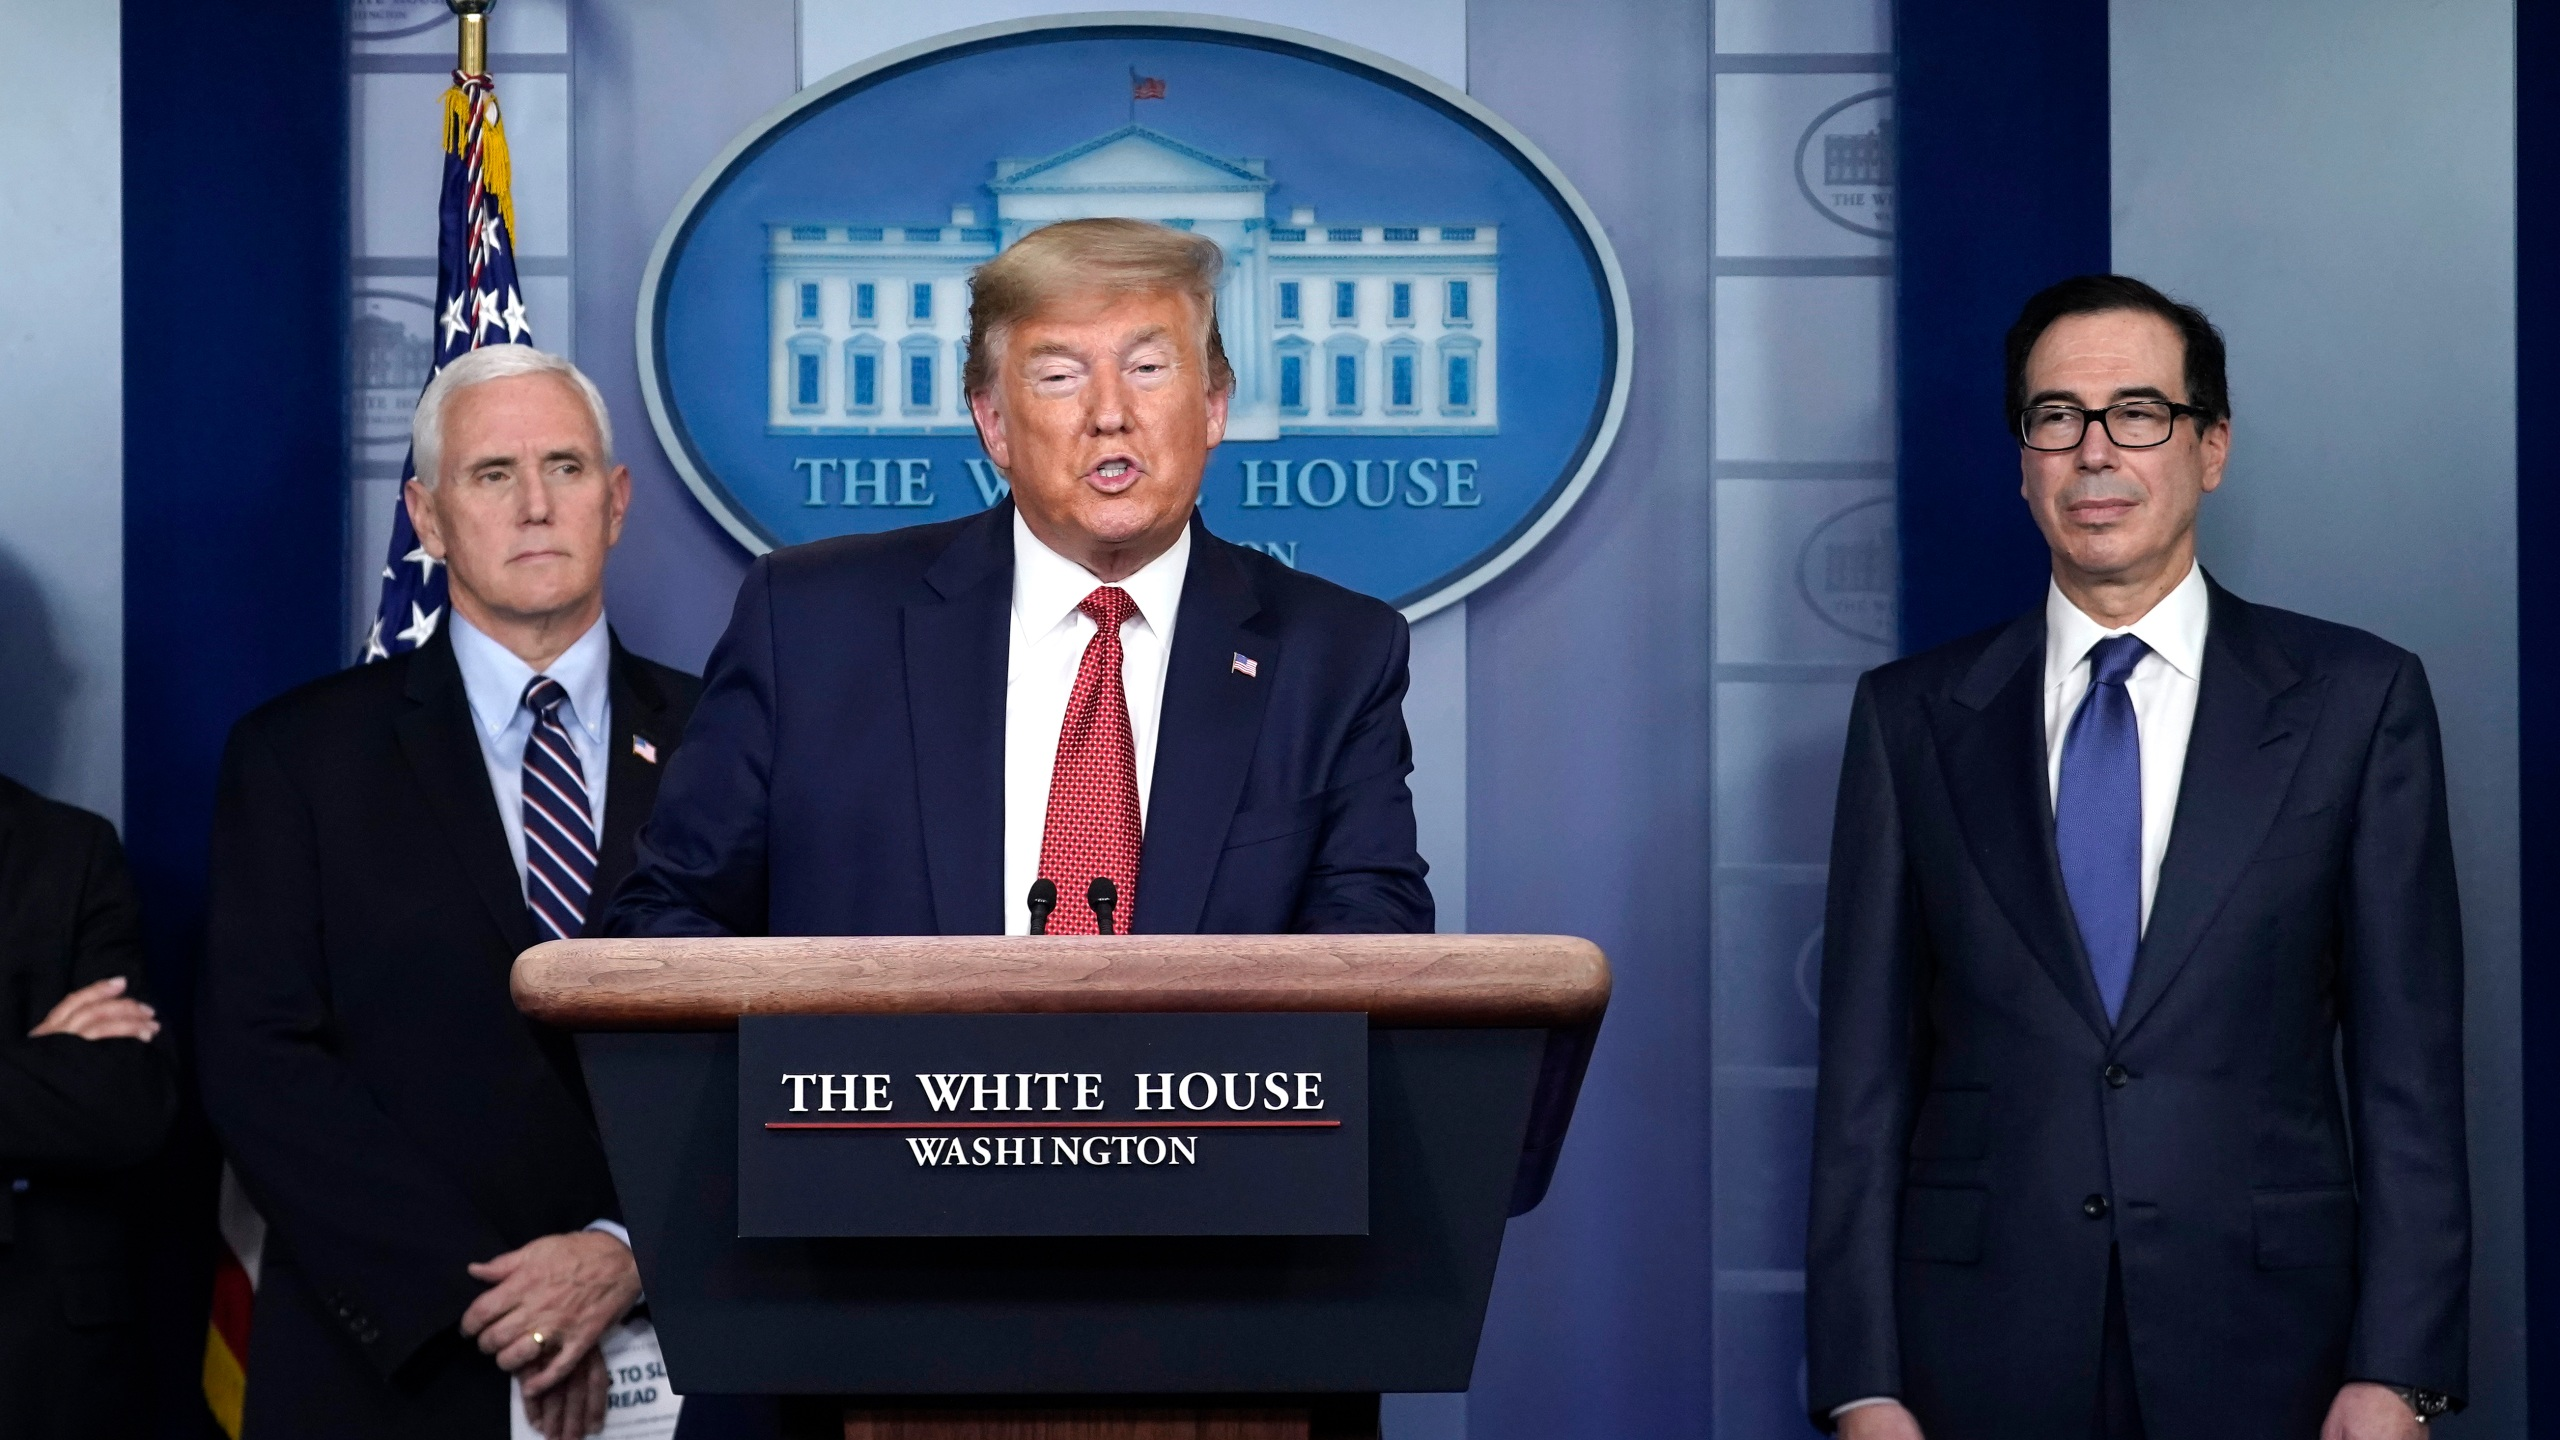 U.S. President Donald Trump, joined by members of the Coronavirus Task Force, Vice President Mike Pence and Secretary of the Treasury Steven Mnuchin, speaks during a briefing on the coronavirus pandemic, in the press briefing room of the White House on March 25, 2020. (Drew Angerer/Getty Images)